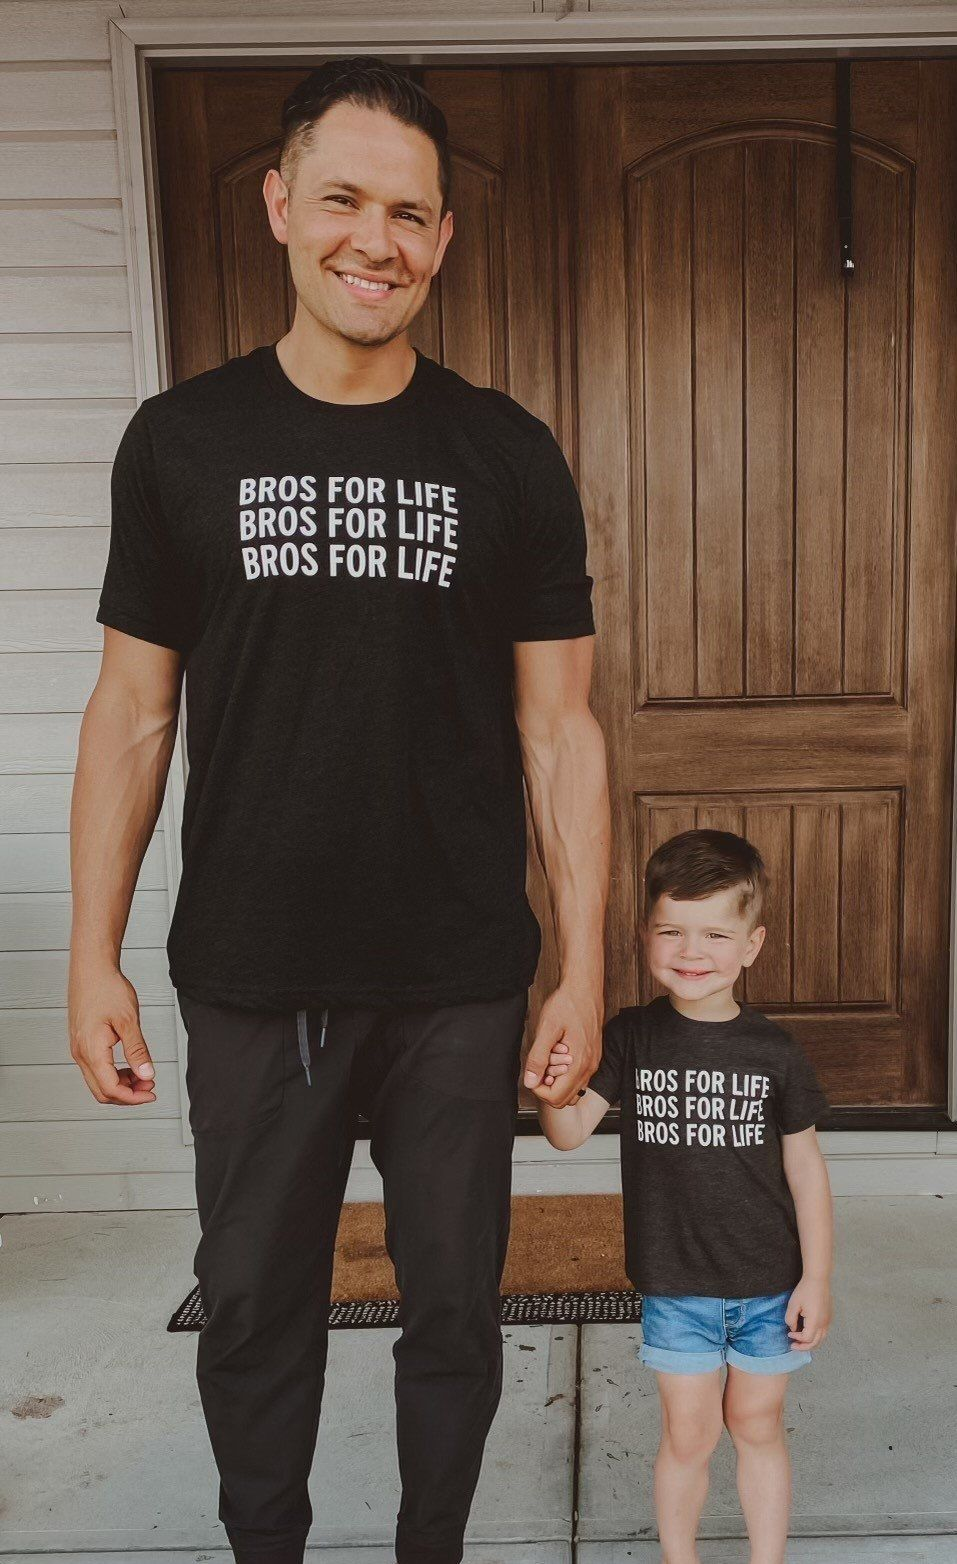 BROS FOR LIFE TEES |  ADULT OR KIDS - MEN'S XL